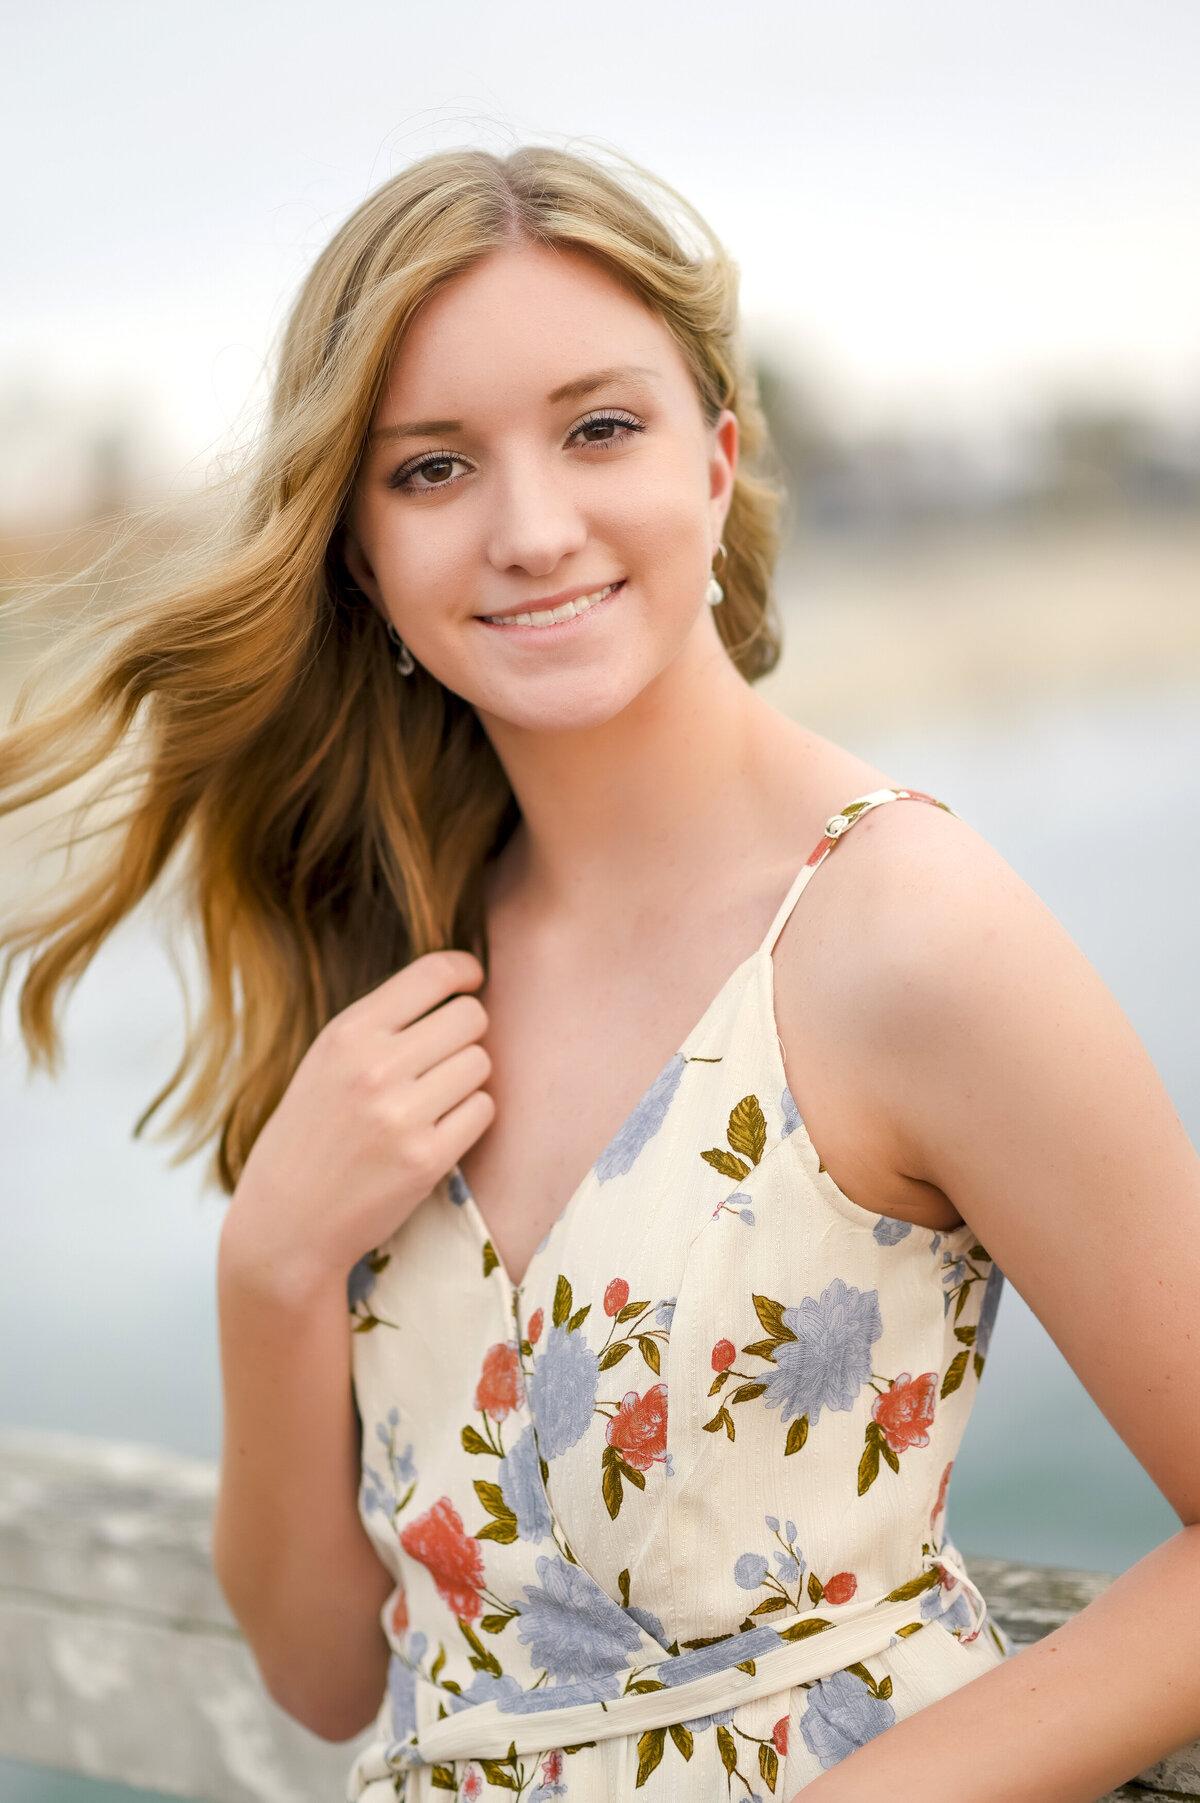 Poway-High-School-Senior-Photography-HR_005